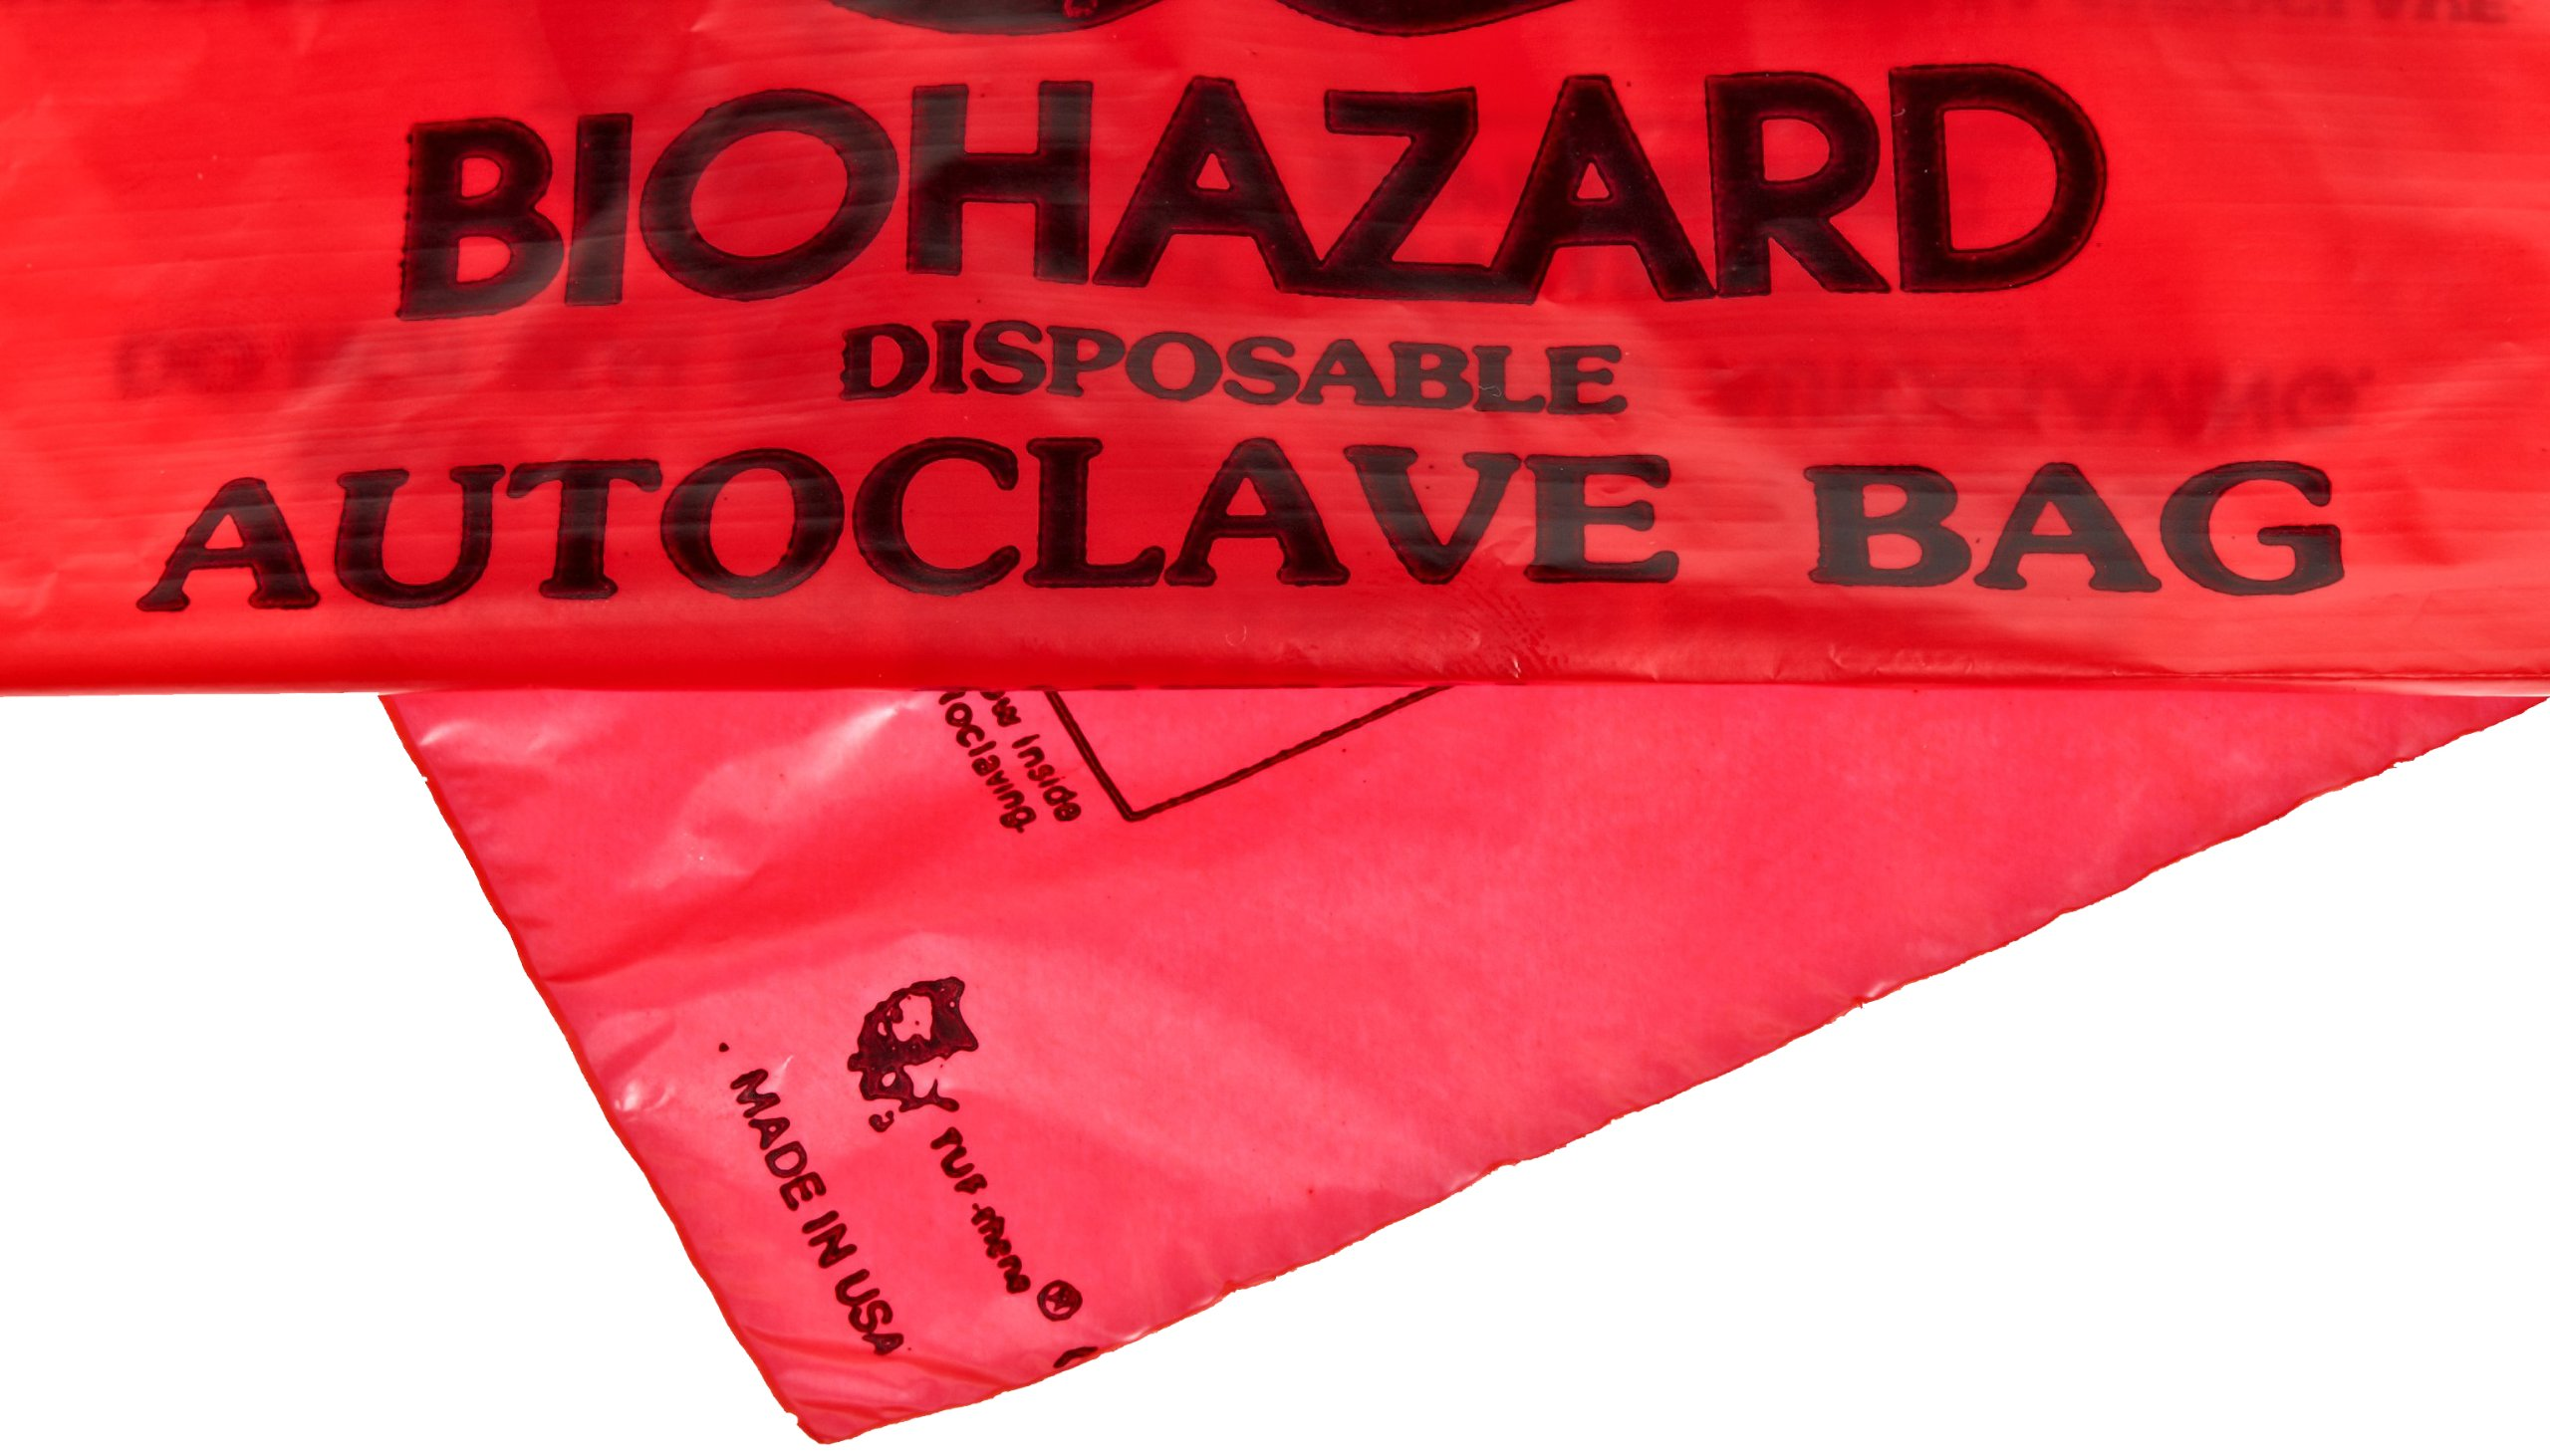 Bel-Art F13166-0000 Bench-Top Biohazard Bags; Red Polyethylene, 0.43 Gallon, 8.5W x 11 in. H, 0.018mm Thick (Pack of 100) by SP Scienceware